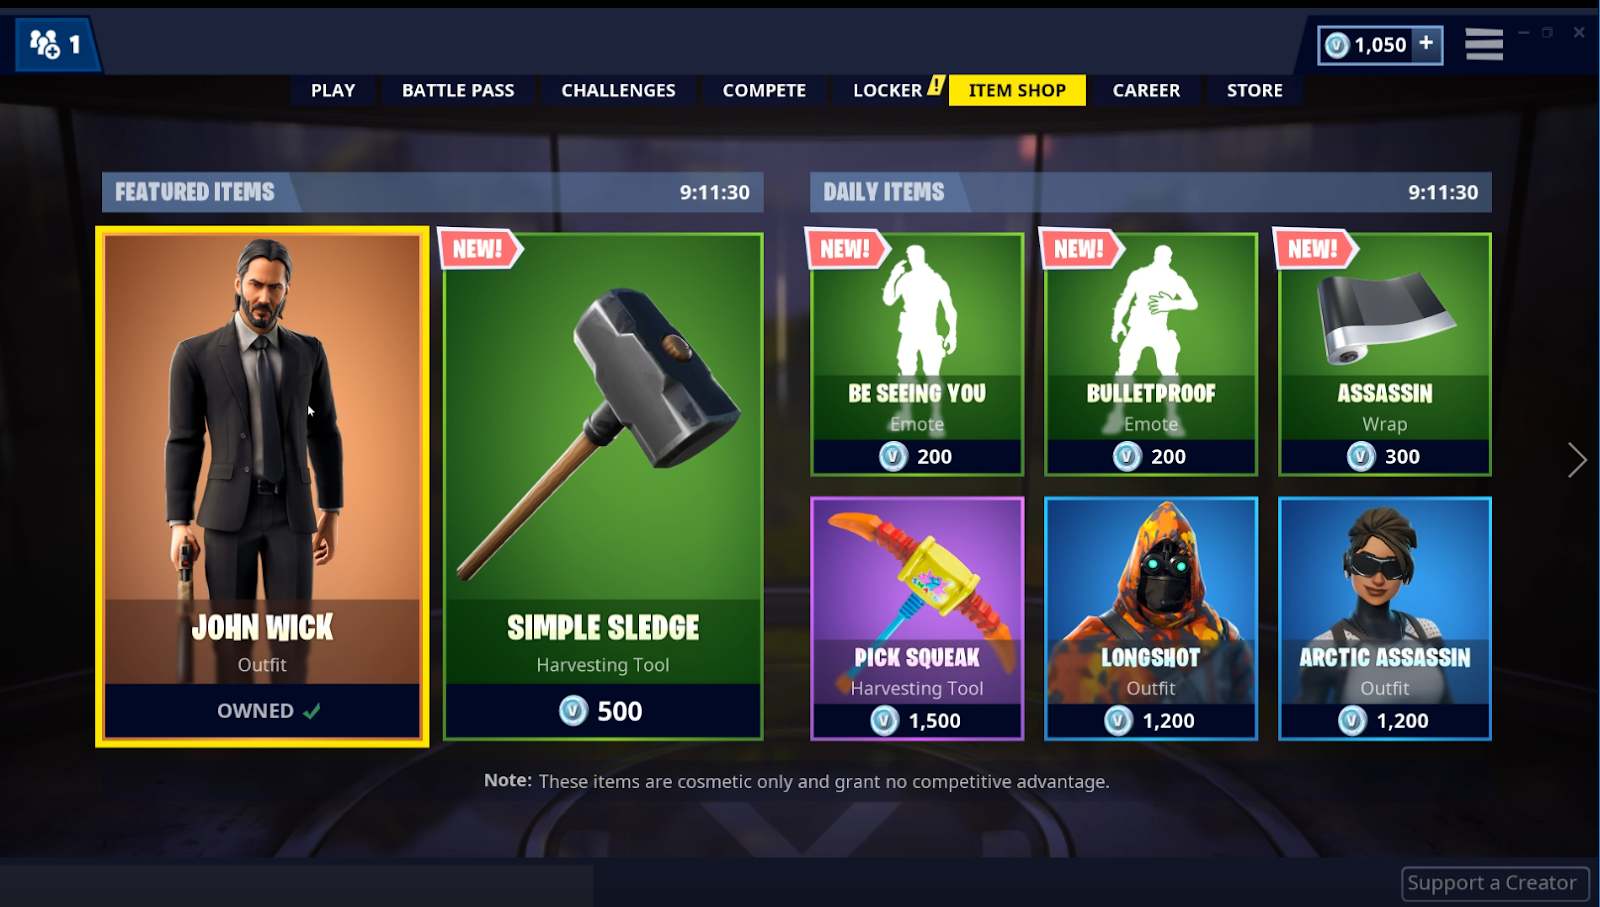 Fortnite S New John Wick Mode Is Basically Just Fortnite With Nice Suits It was released on may 16th, 2019 and was last available 66 days ago. fortnite s new john wick mode is